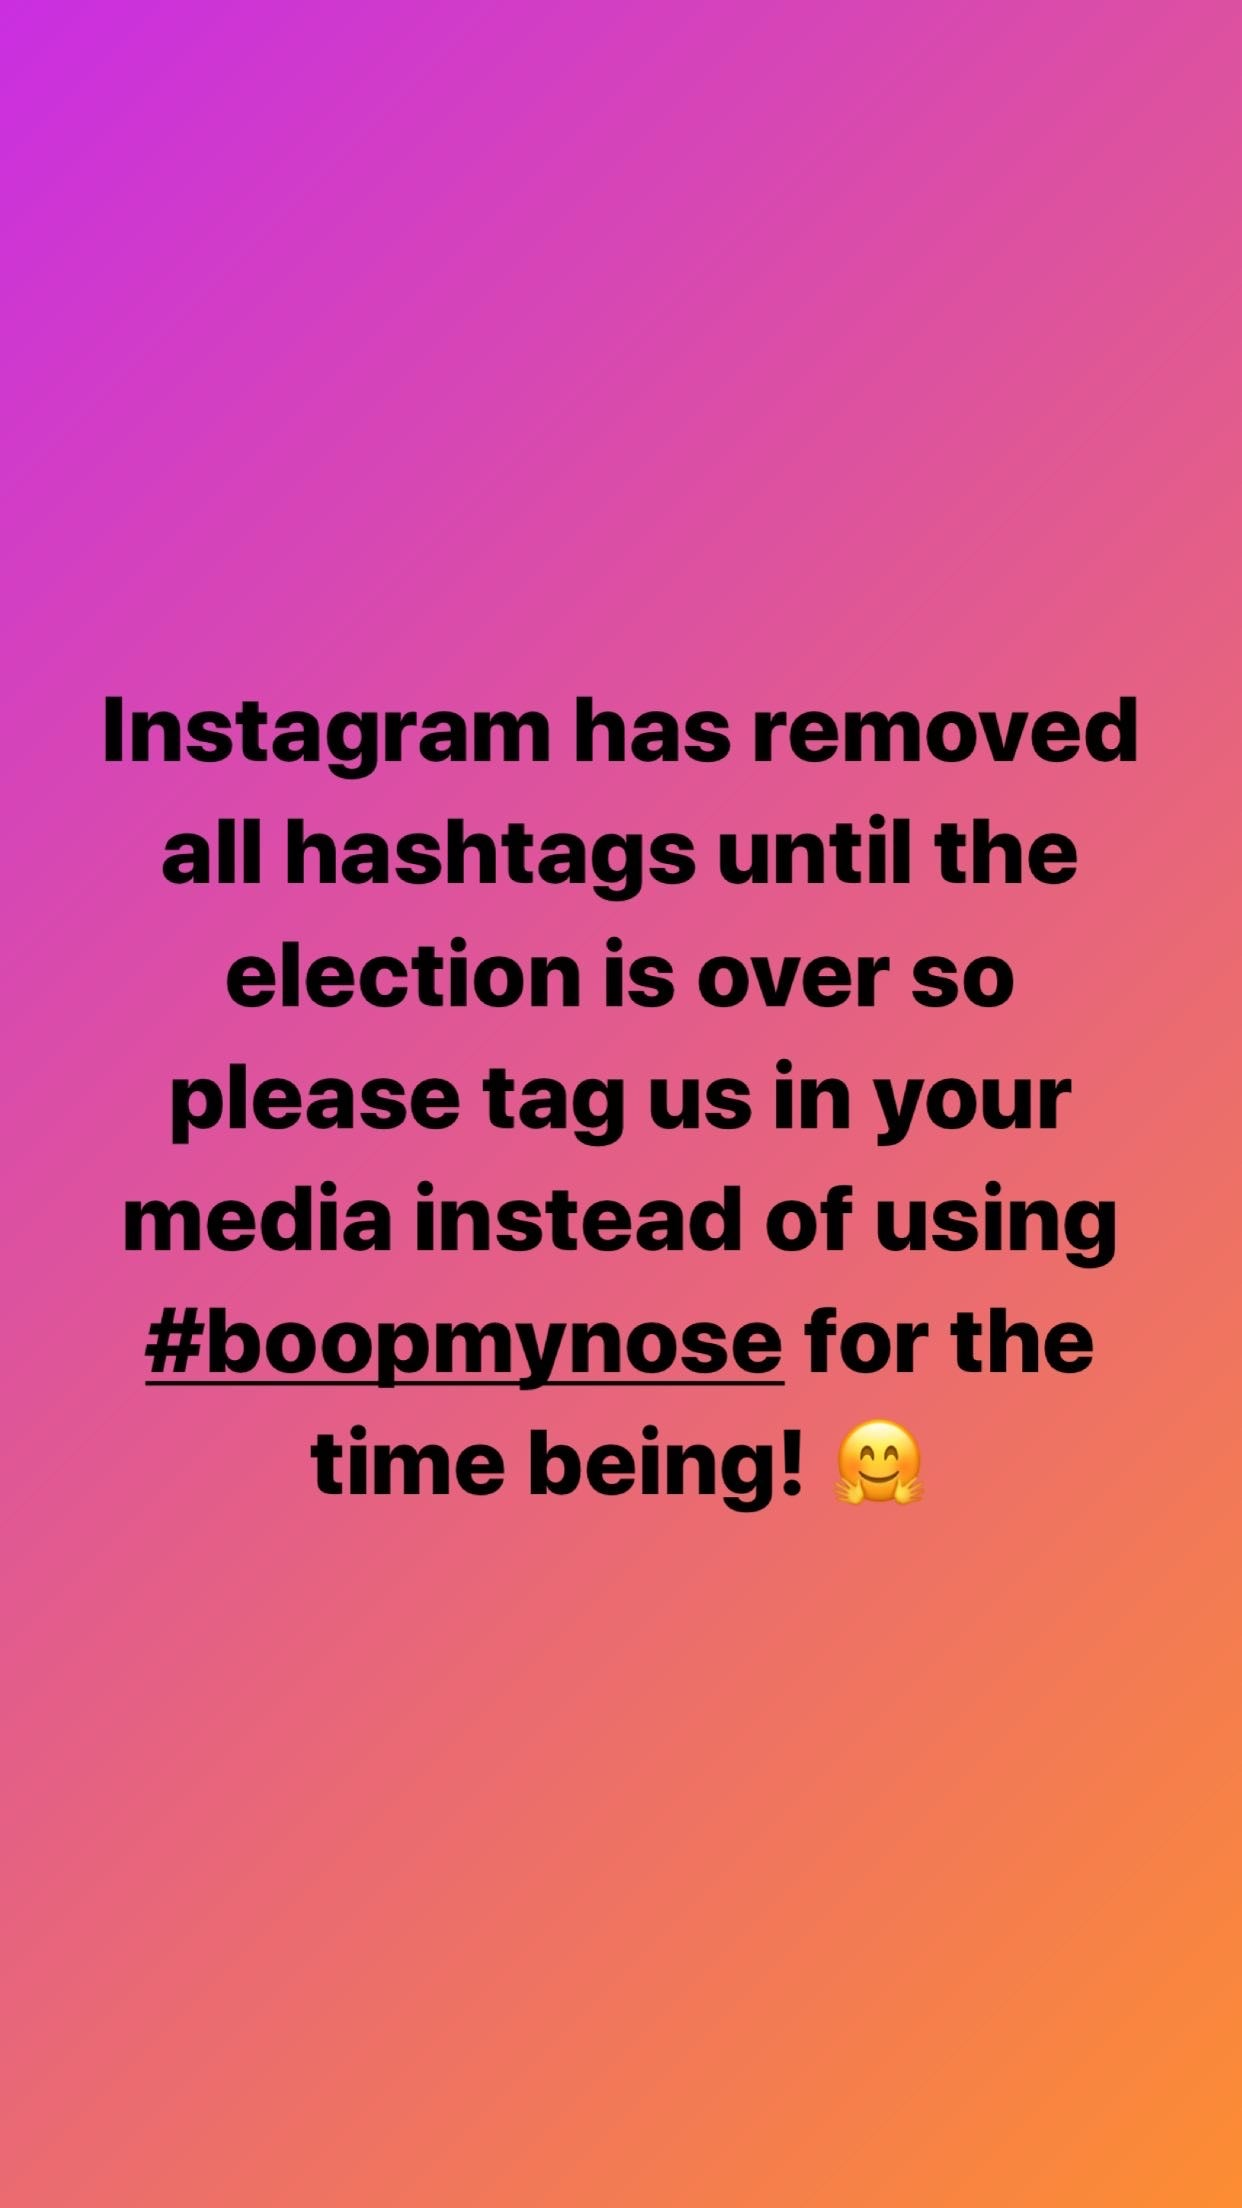 Instagram removed hashtags until post US election